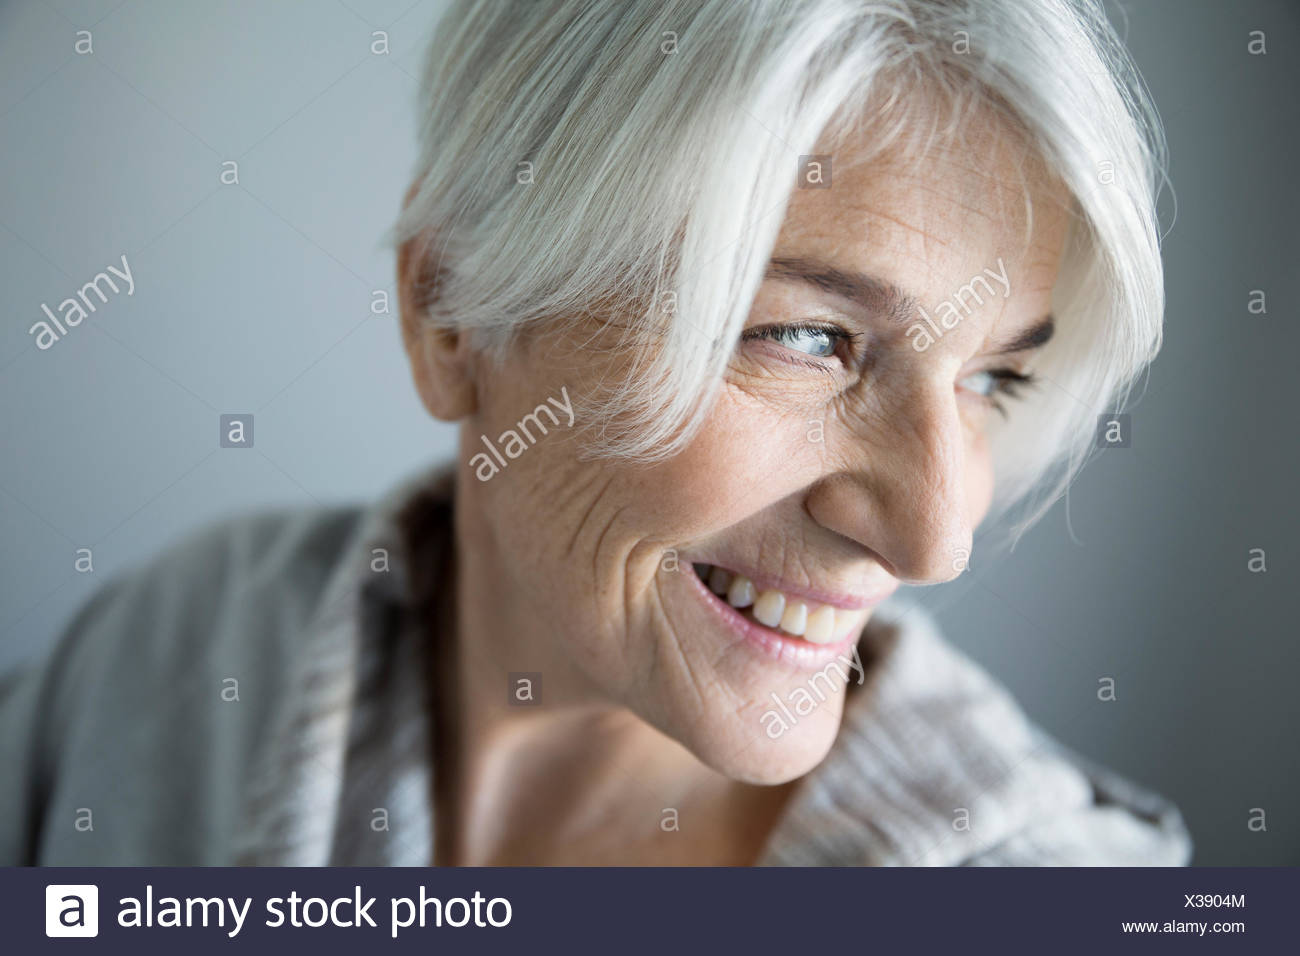 Close up smiling senior woman looking over shoulder Photo Stock